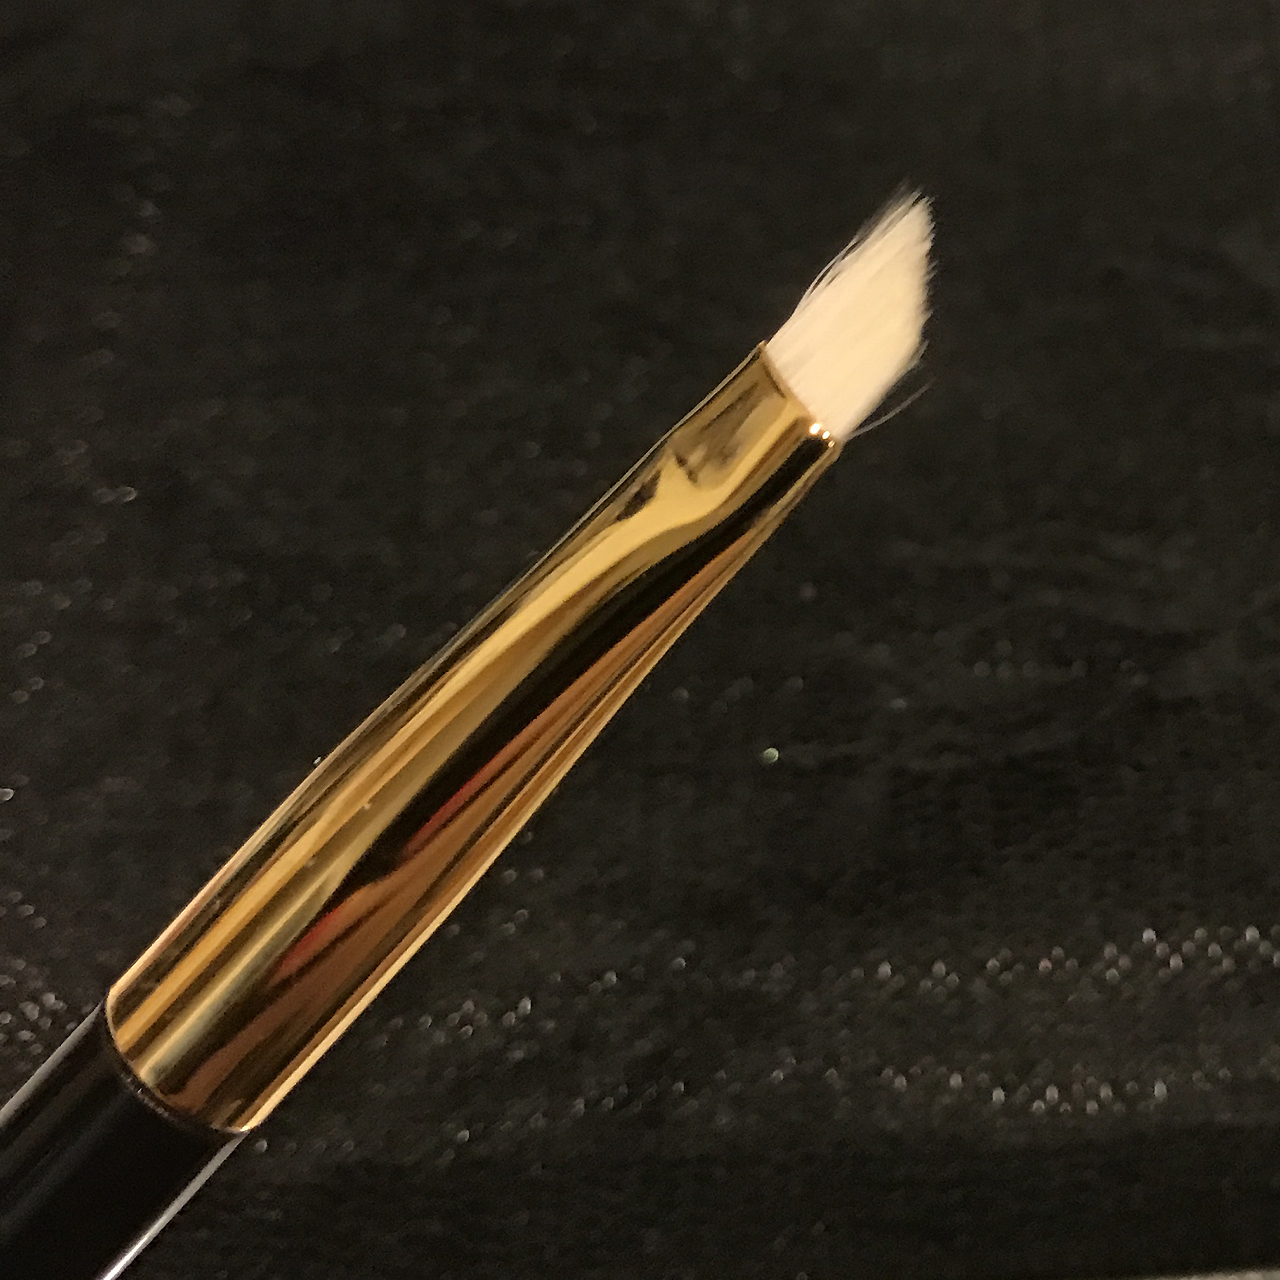 Tom Ford Angled Brow Brush